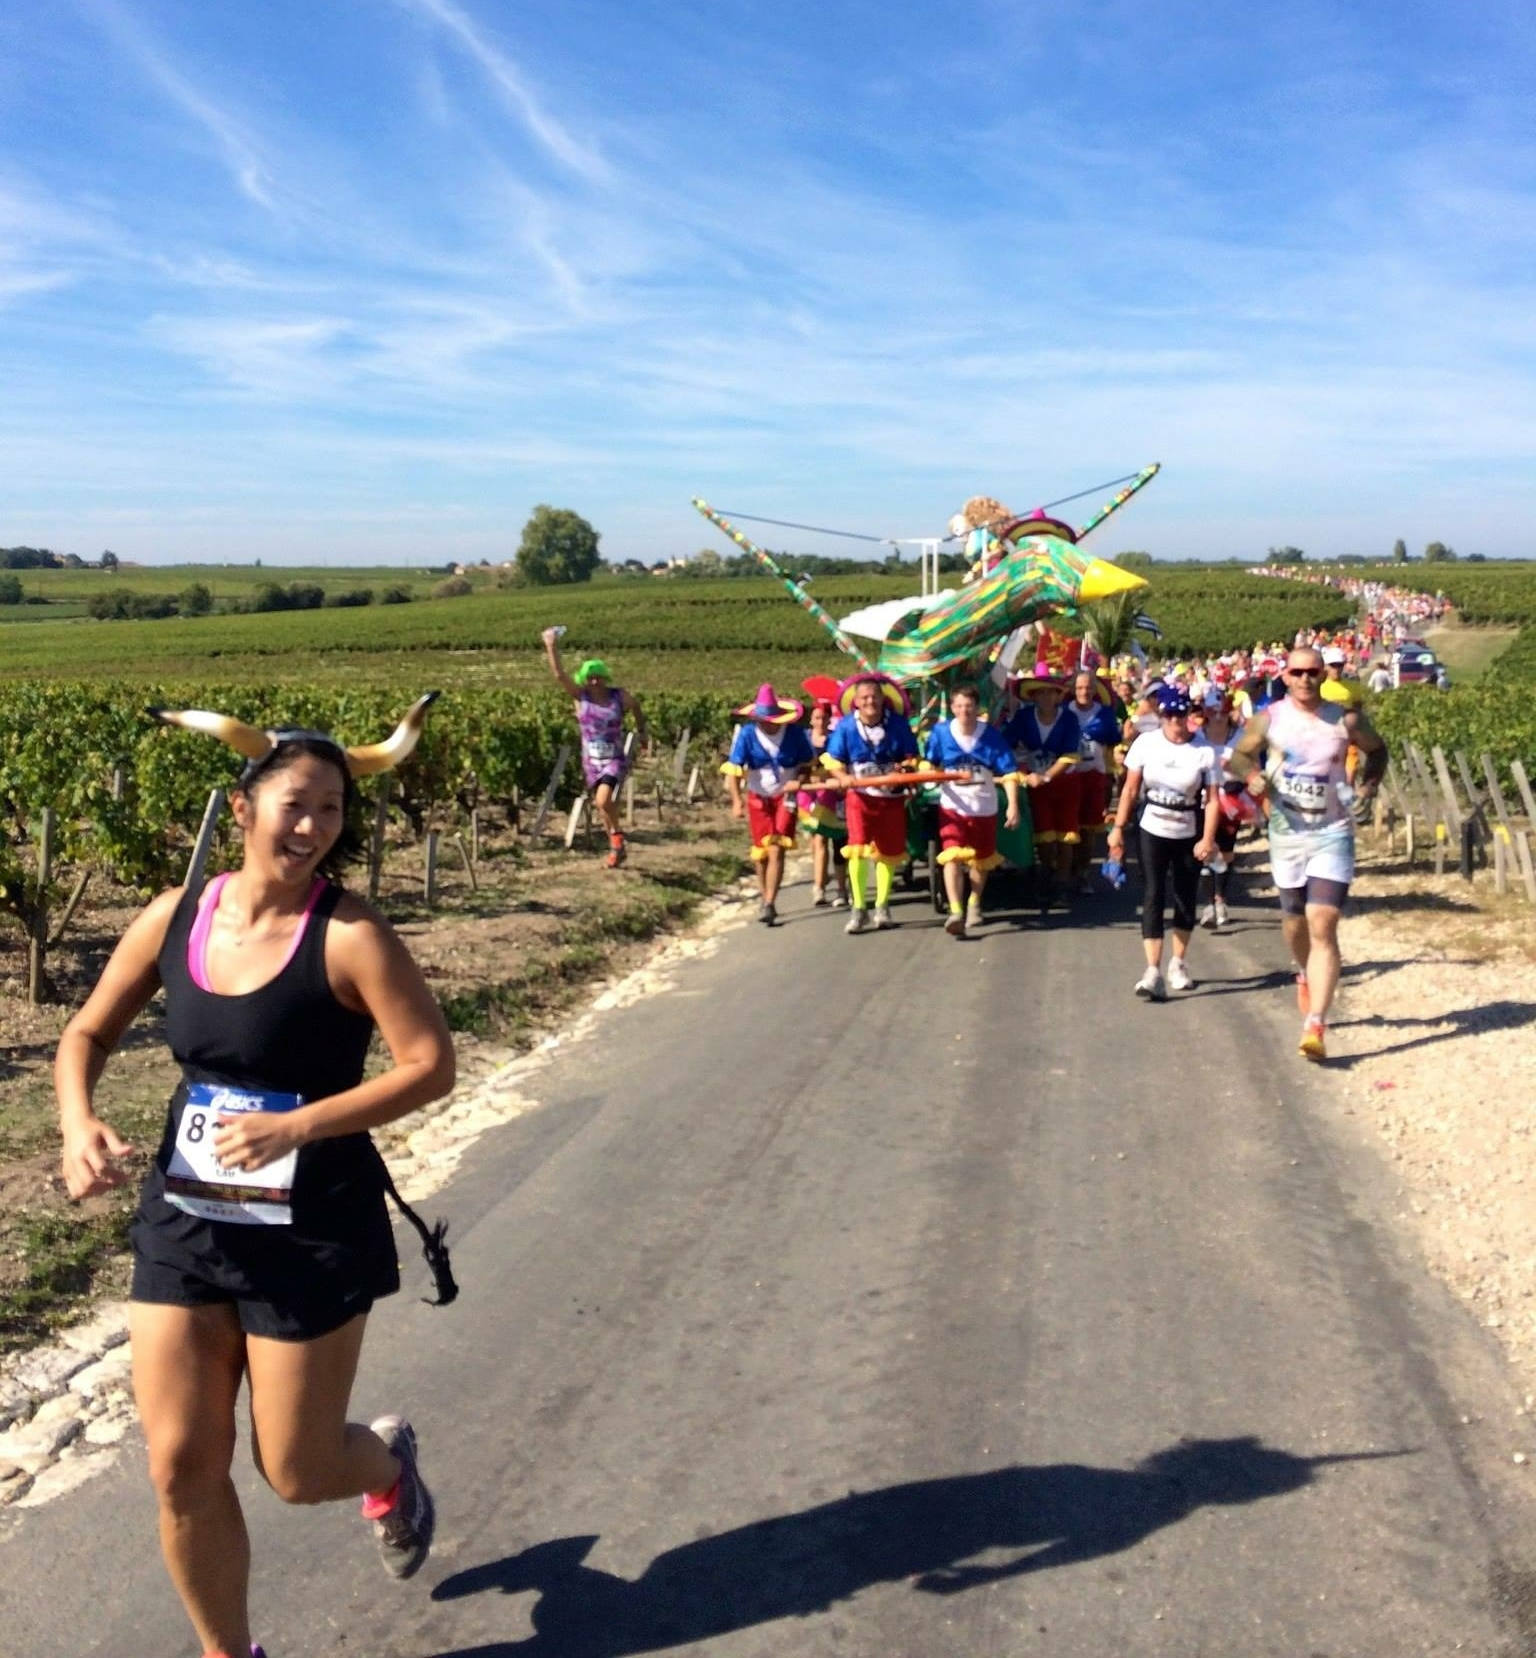 Running with joy in Pauillac, France